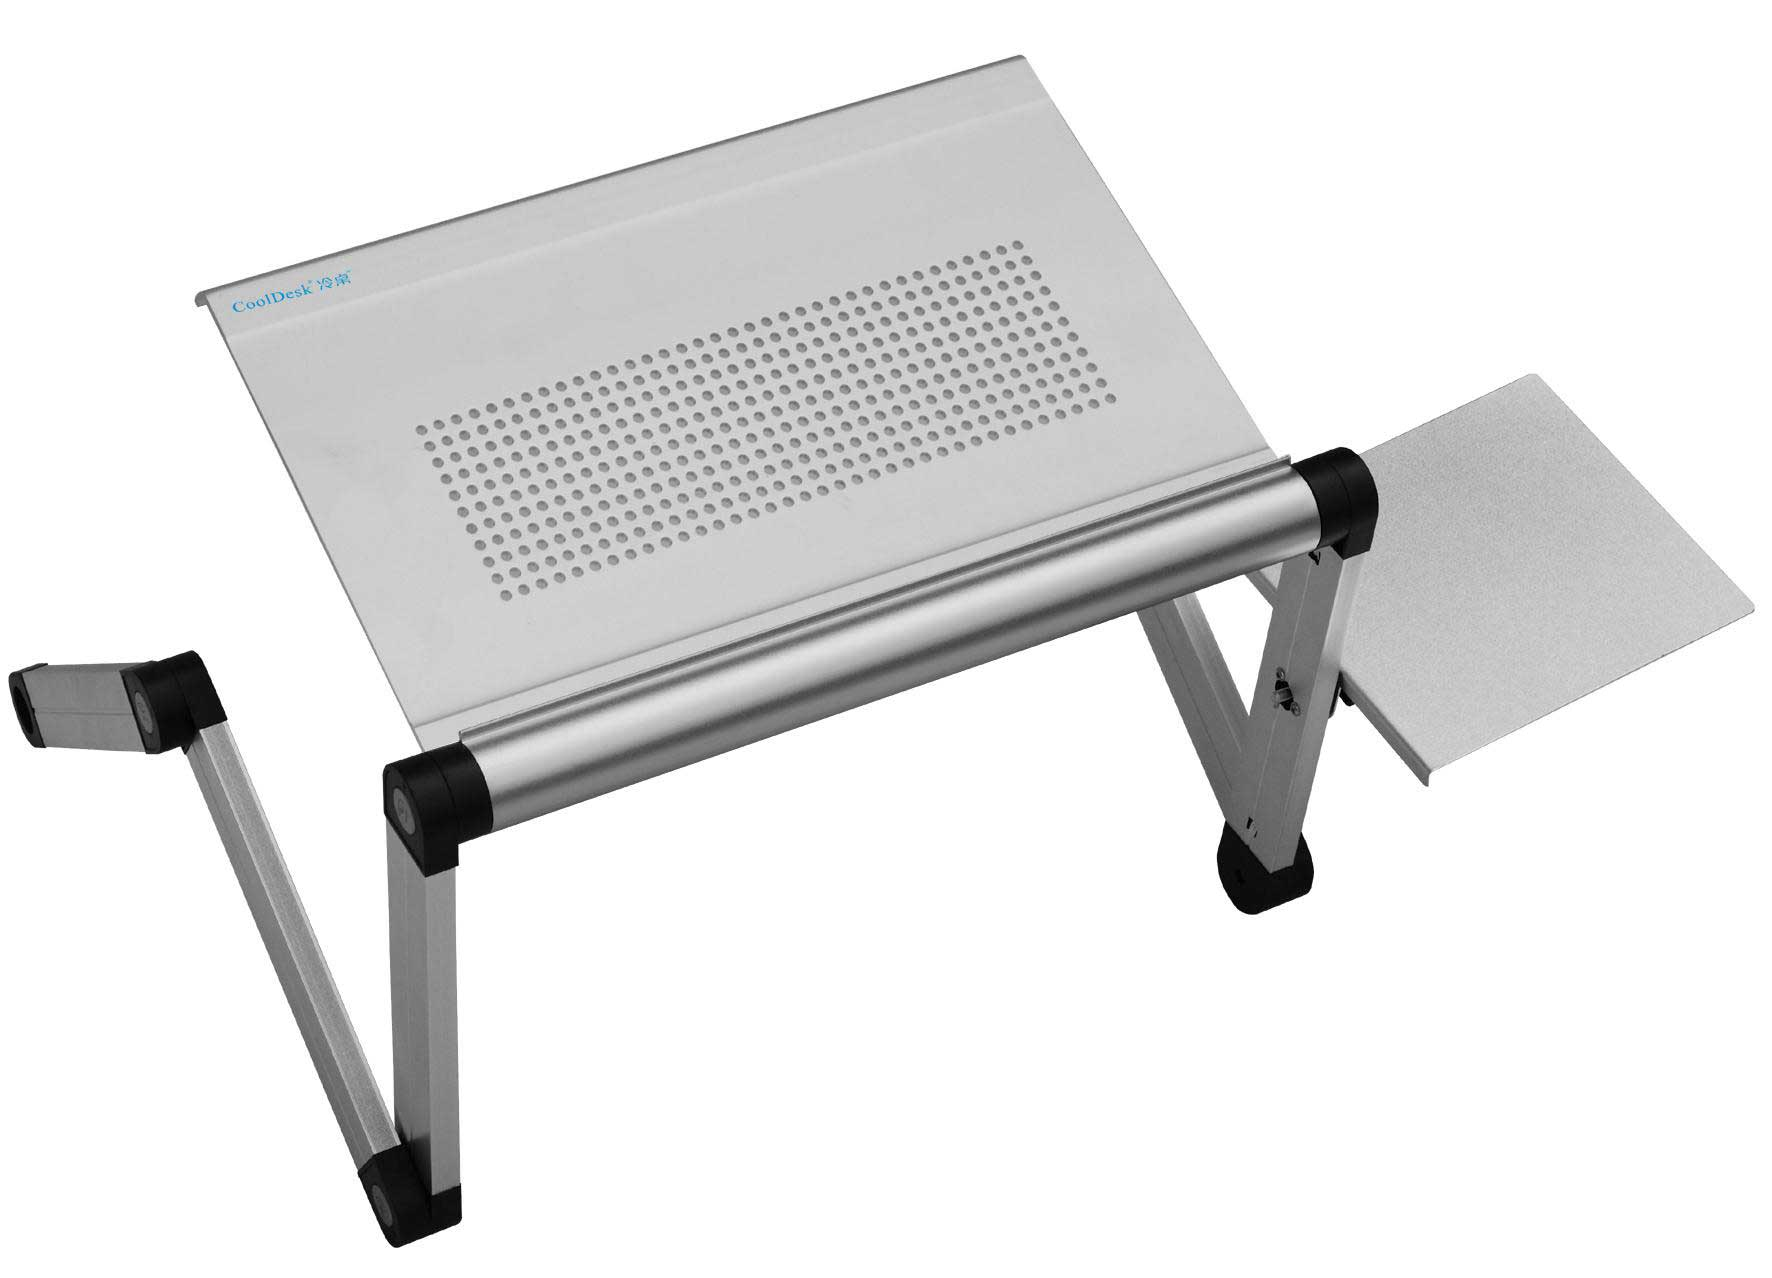 Folding aluminum portable Laptop Stand and mouse pad